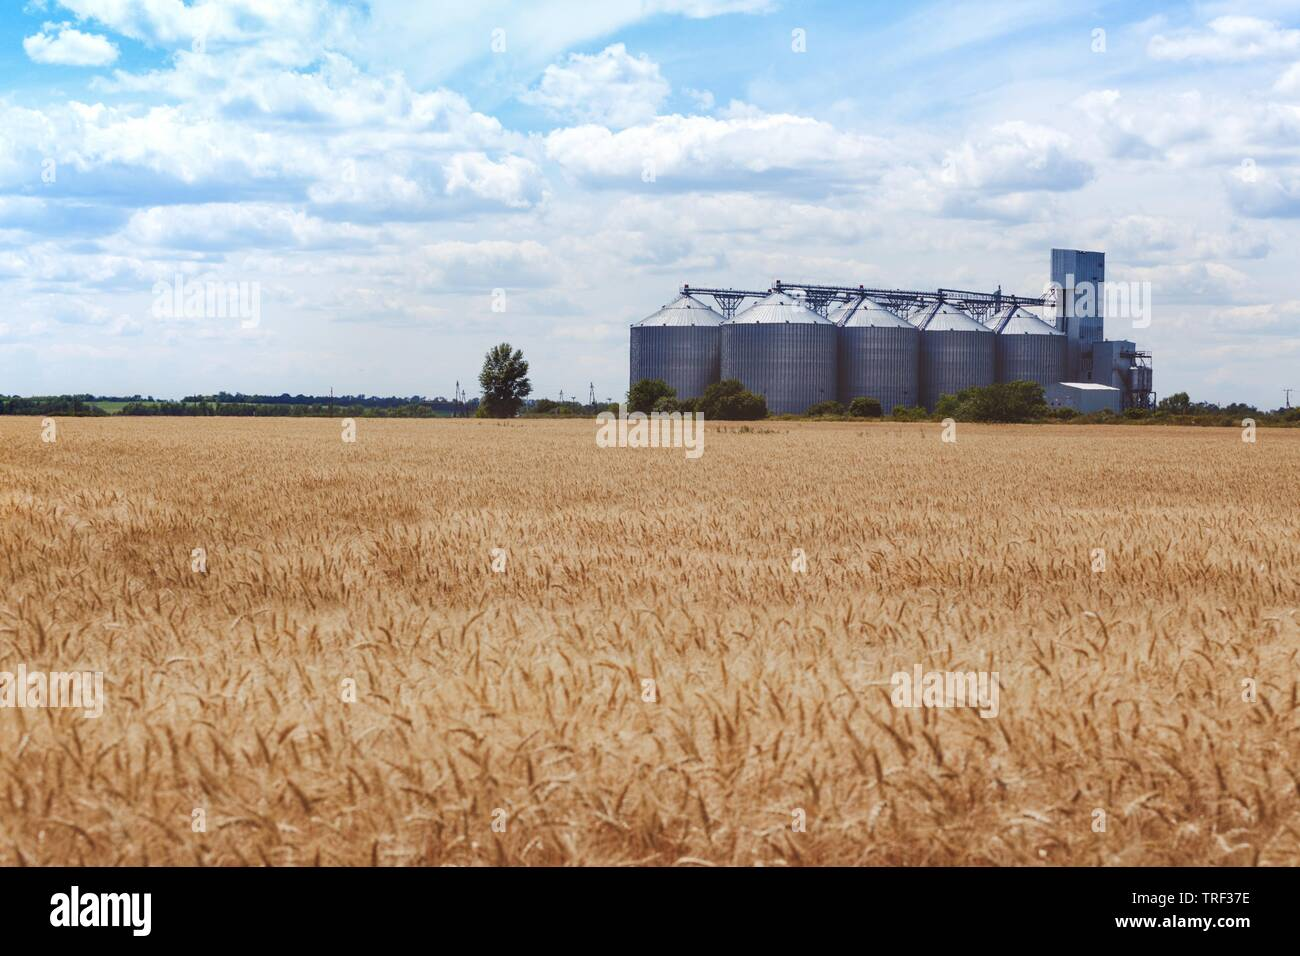 new grain elevator on the background of a wheat field - Stock Image